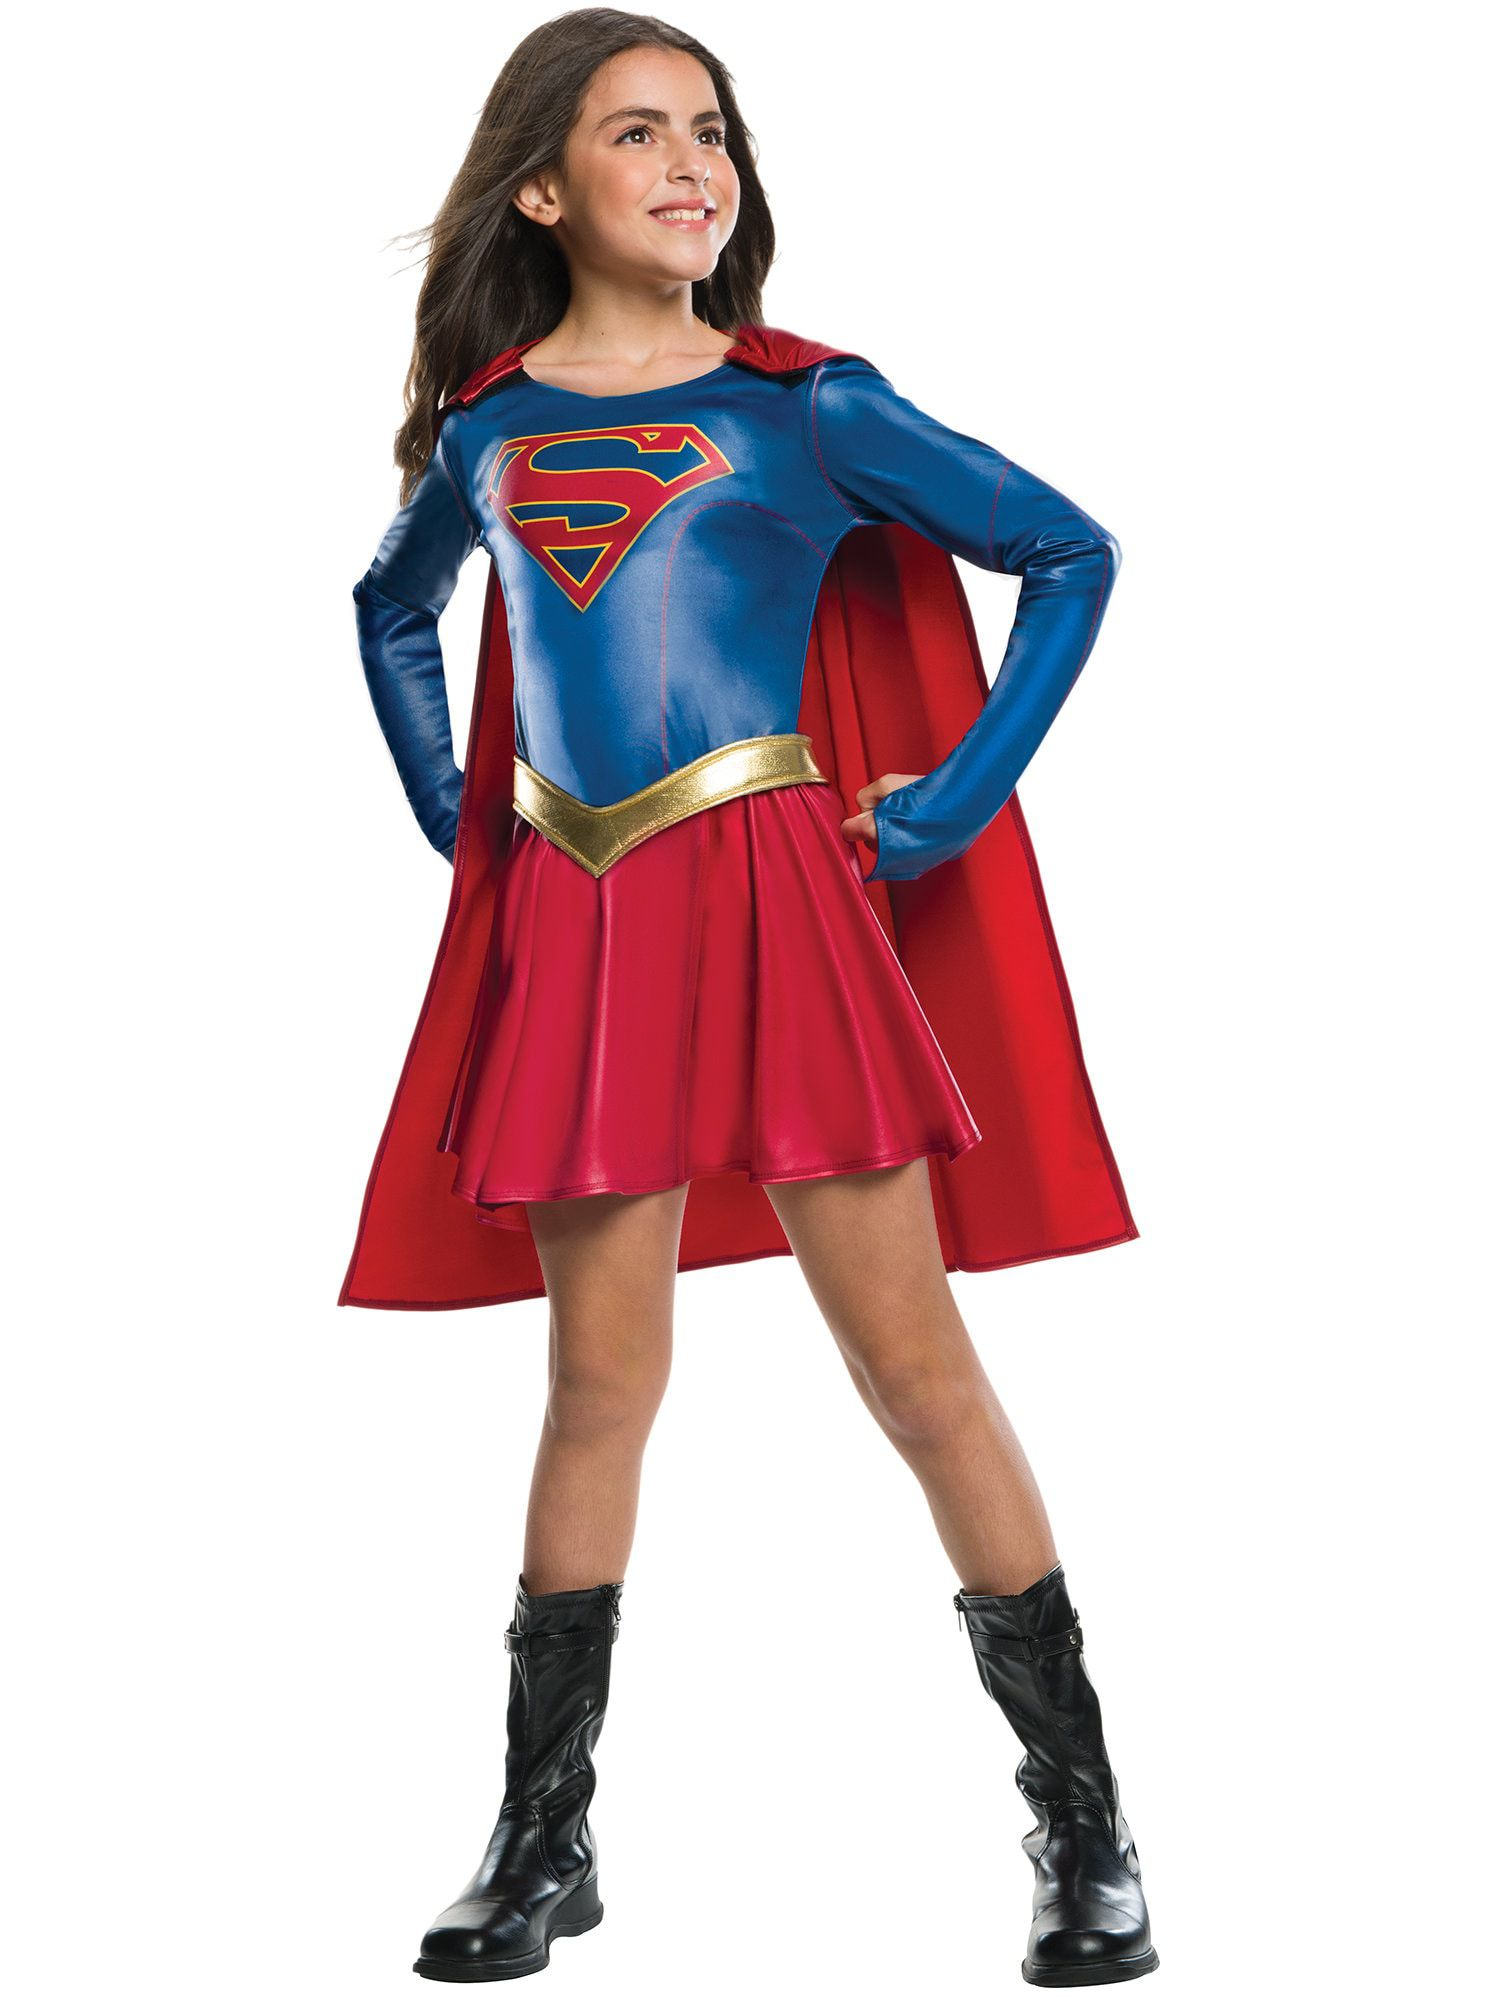 Child TV Show Supergirl Costume  sc 1 st  Wholesale Halloween Costumes & Female Superheroes Halloween Costumes for Girls at Low Wholesale Prices